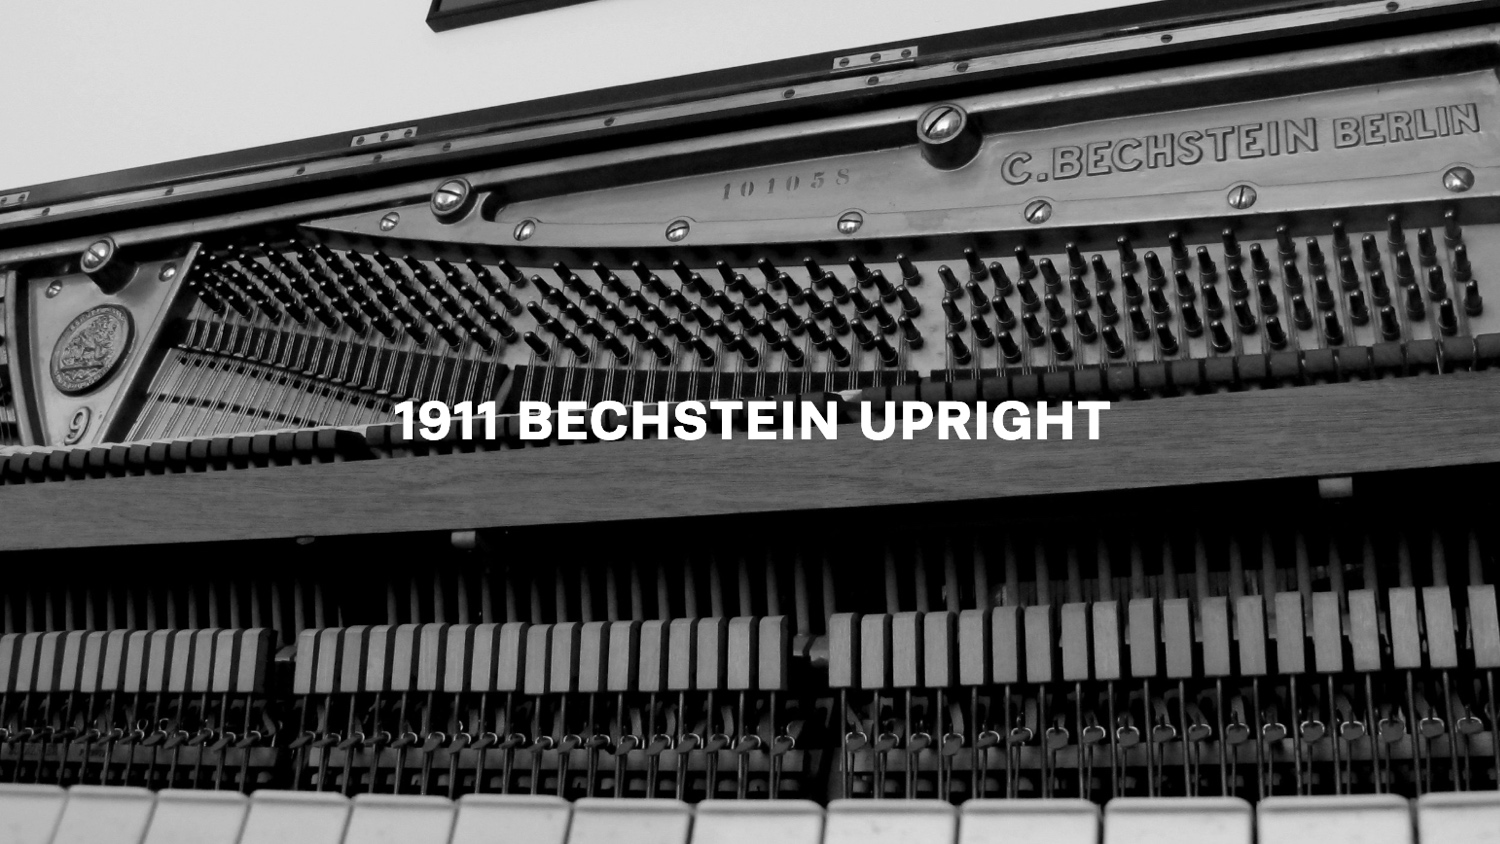 Bechstein Upright Text.jpg